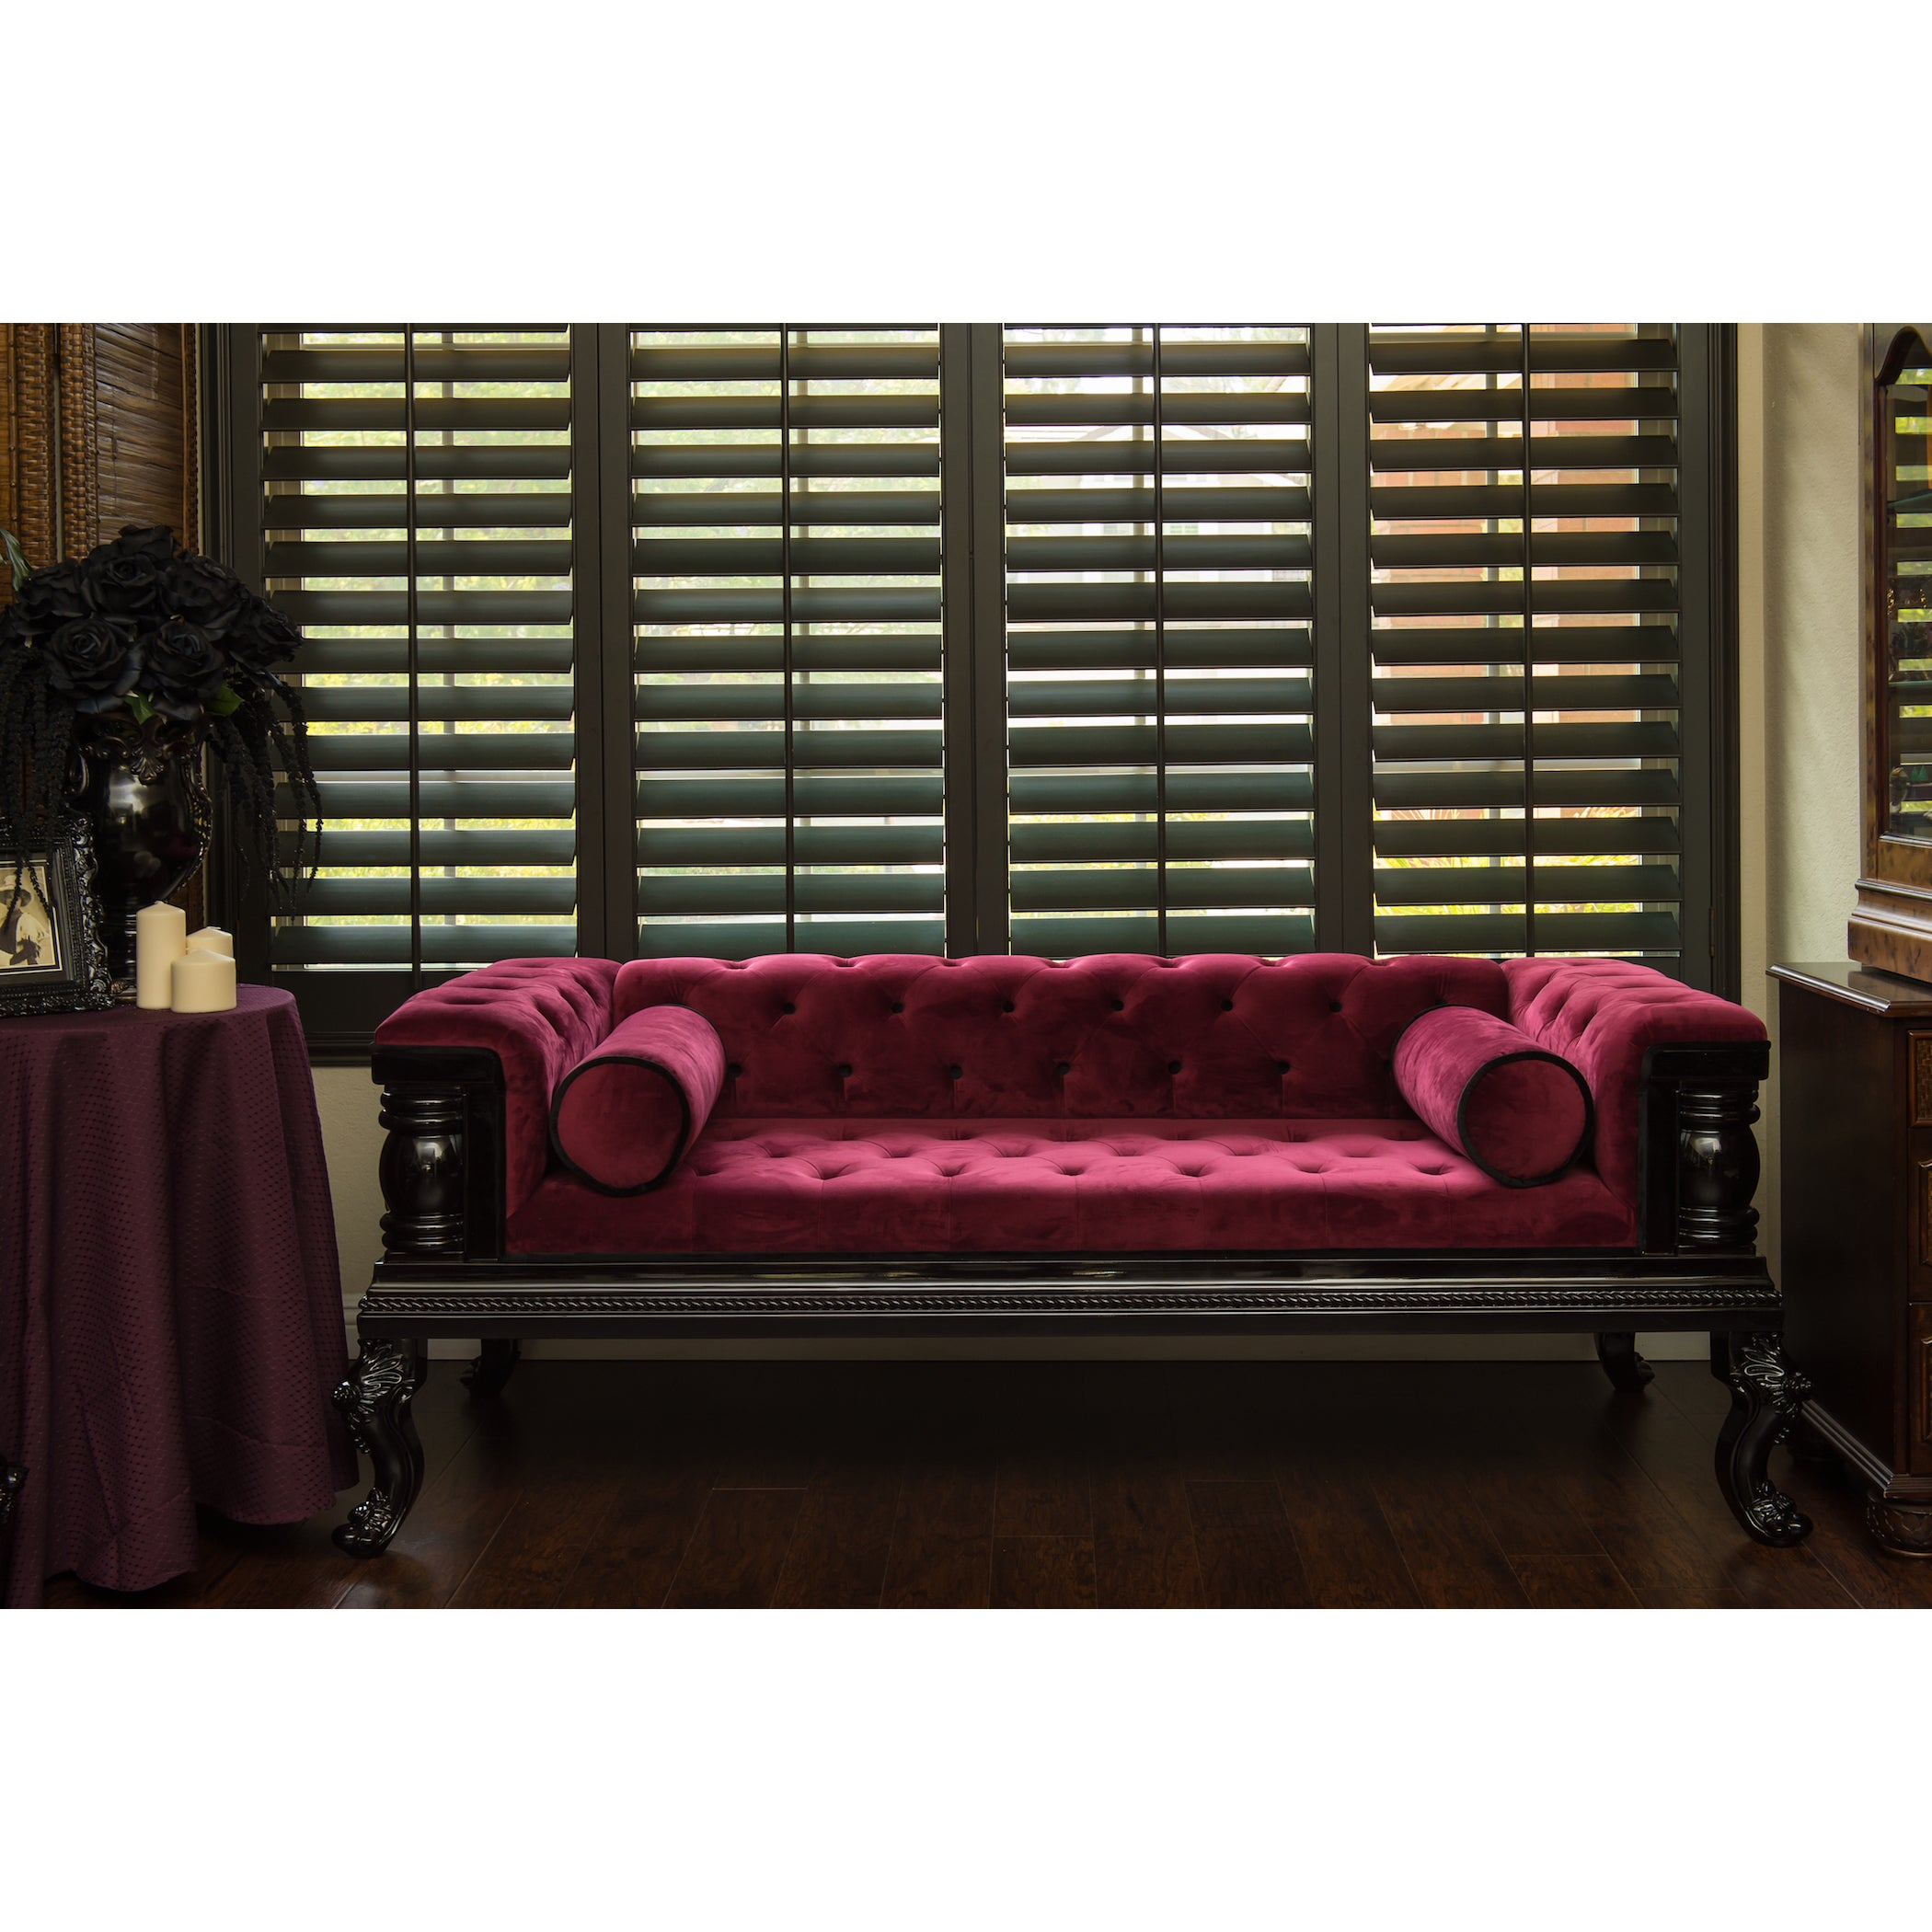 seat couch city velvet hire sofa furniture seater chesterfield style red